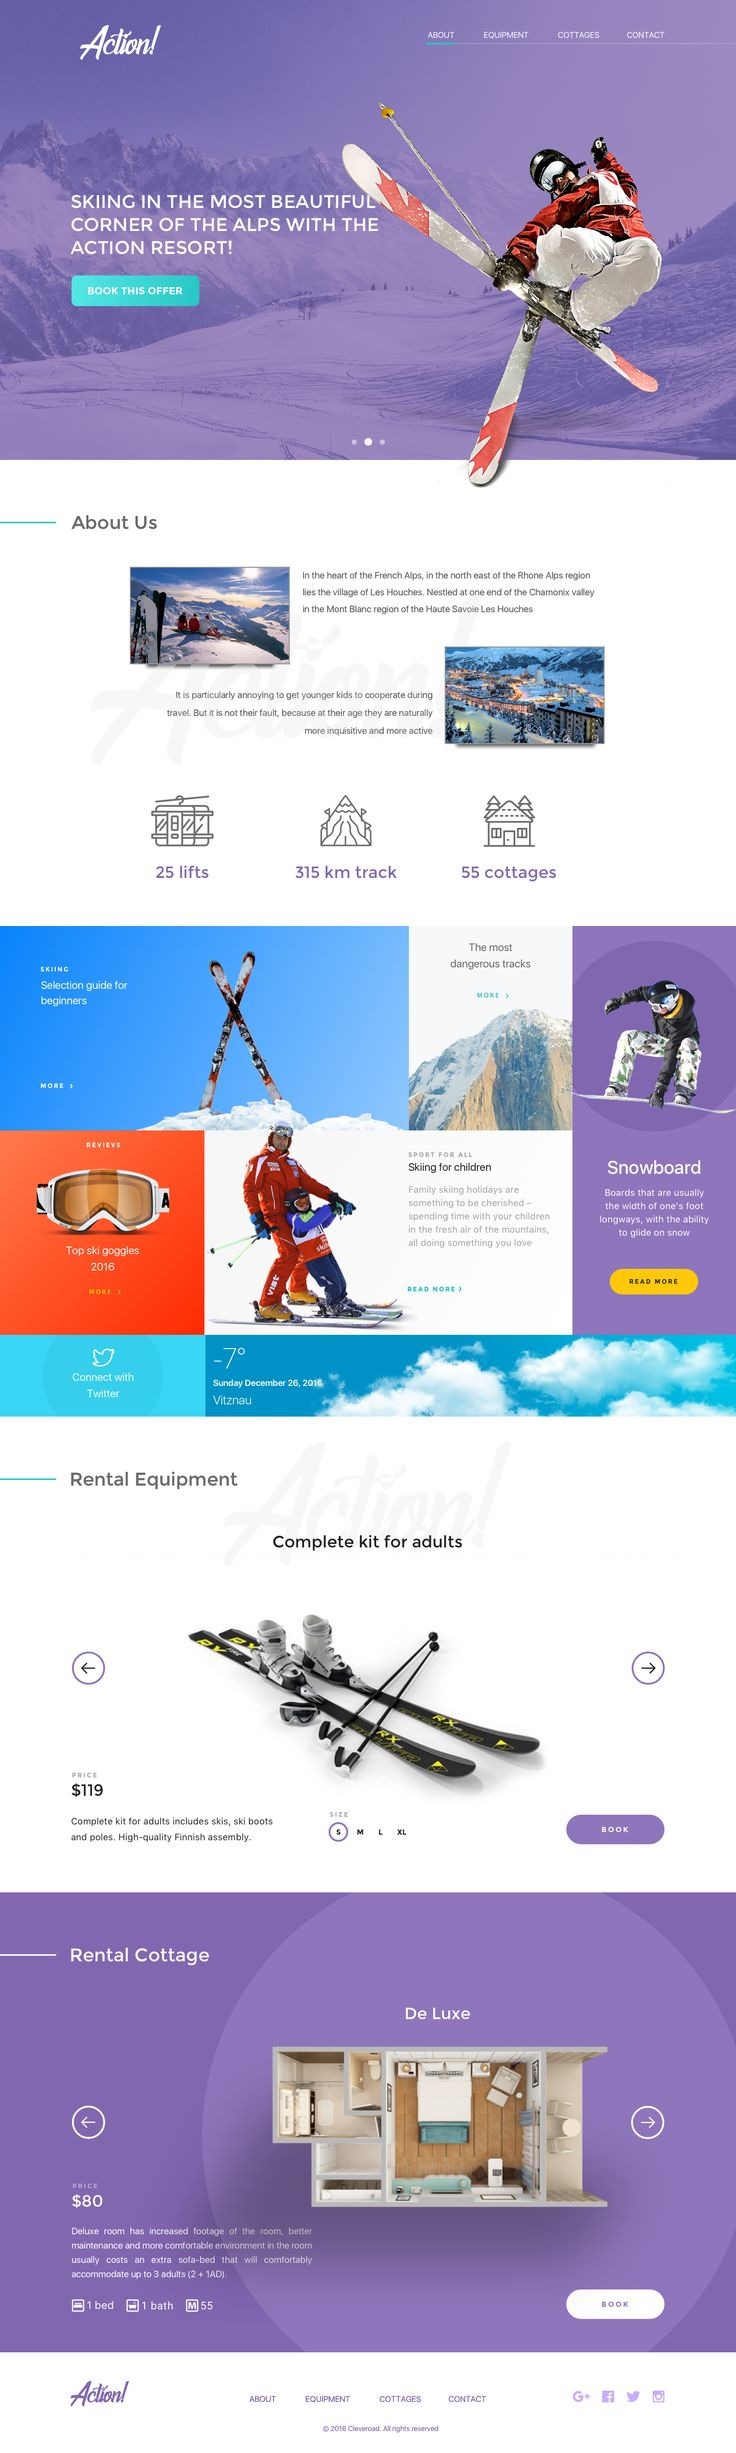 Ski Website Design